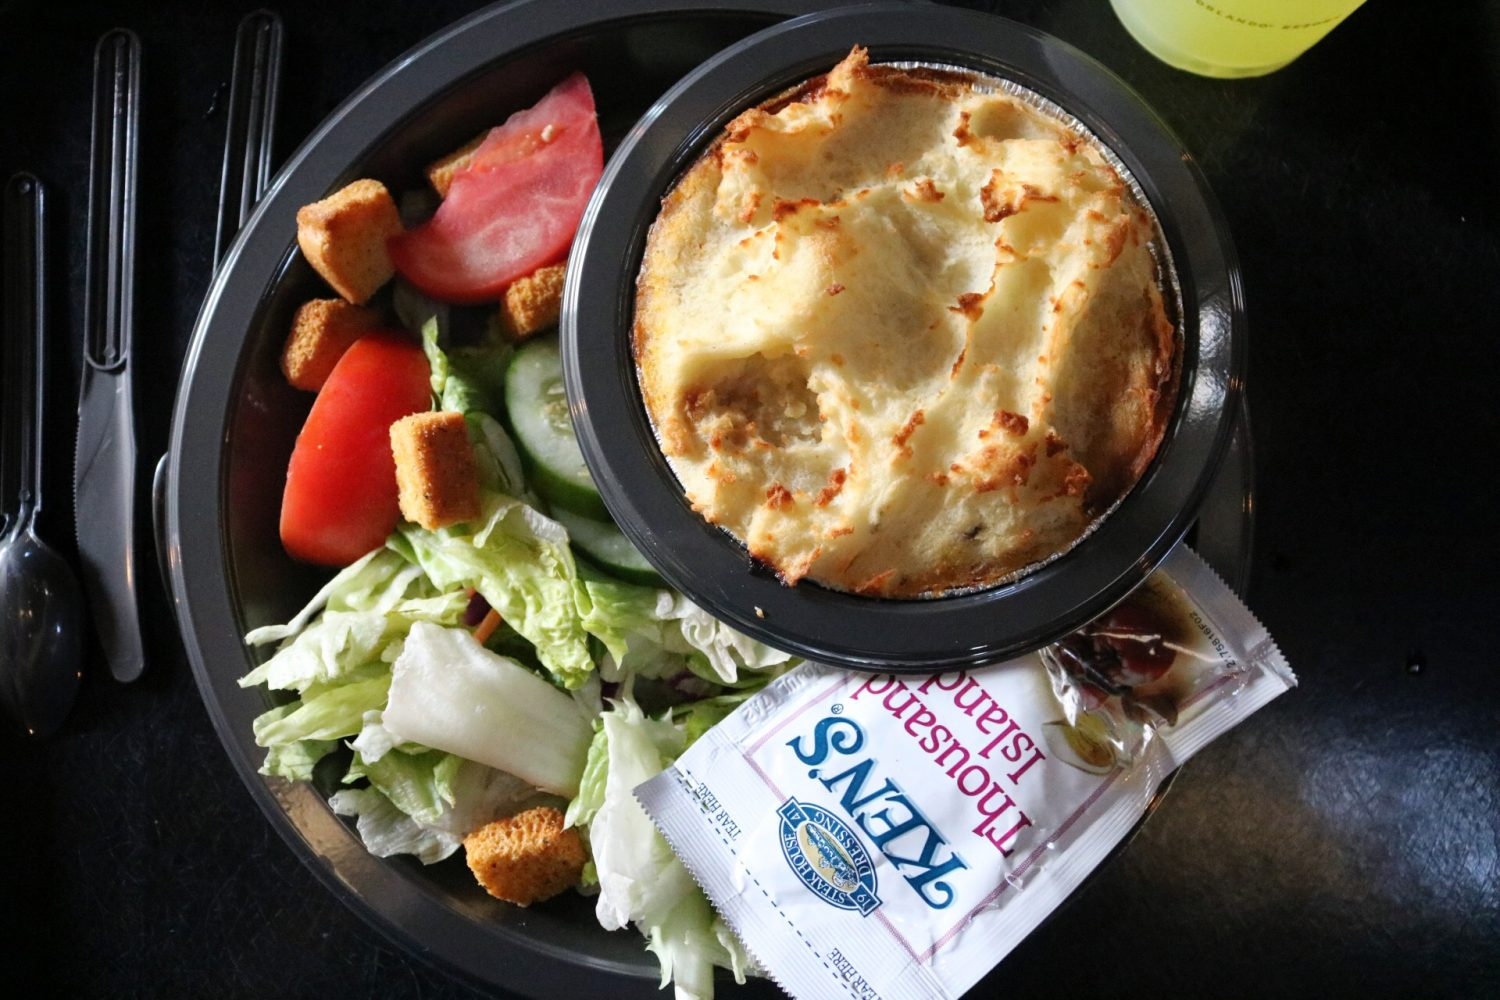 Three Broomsticks Shepherd's Pie with Garden Salad